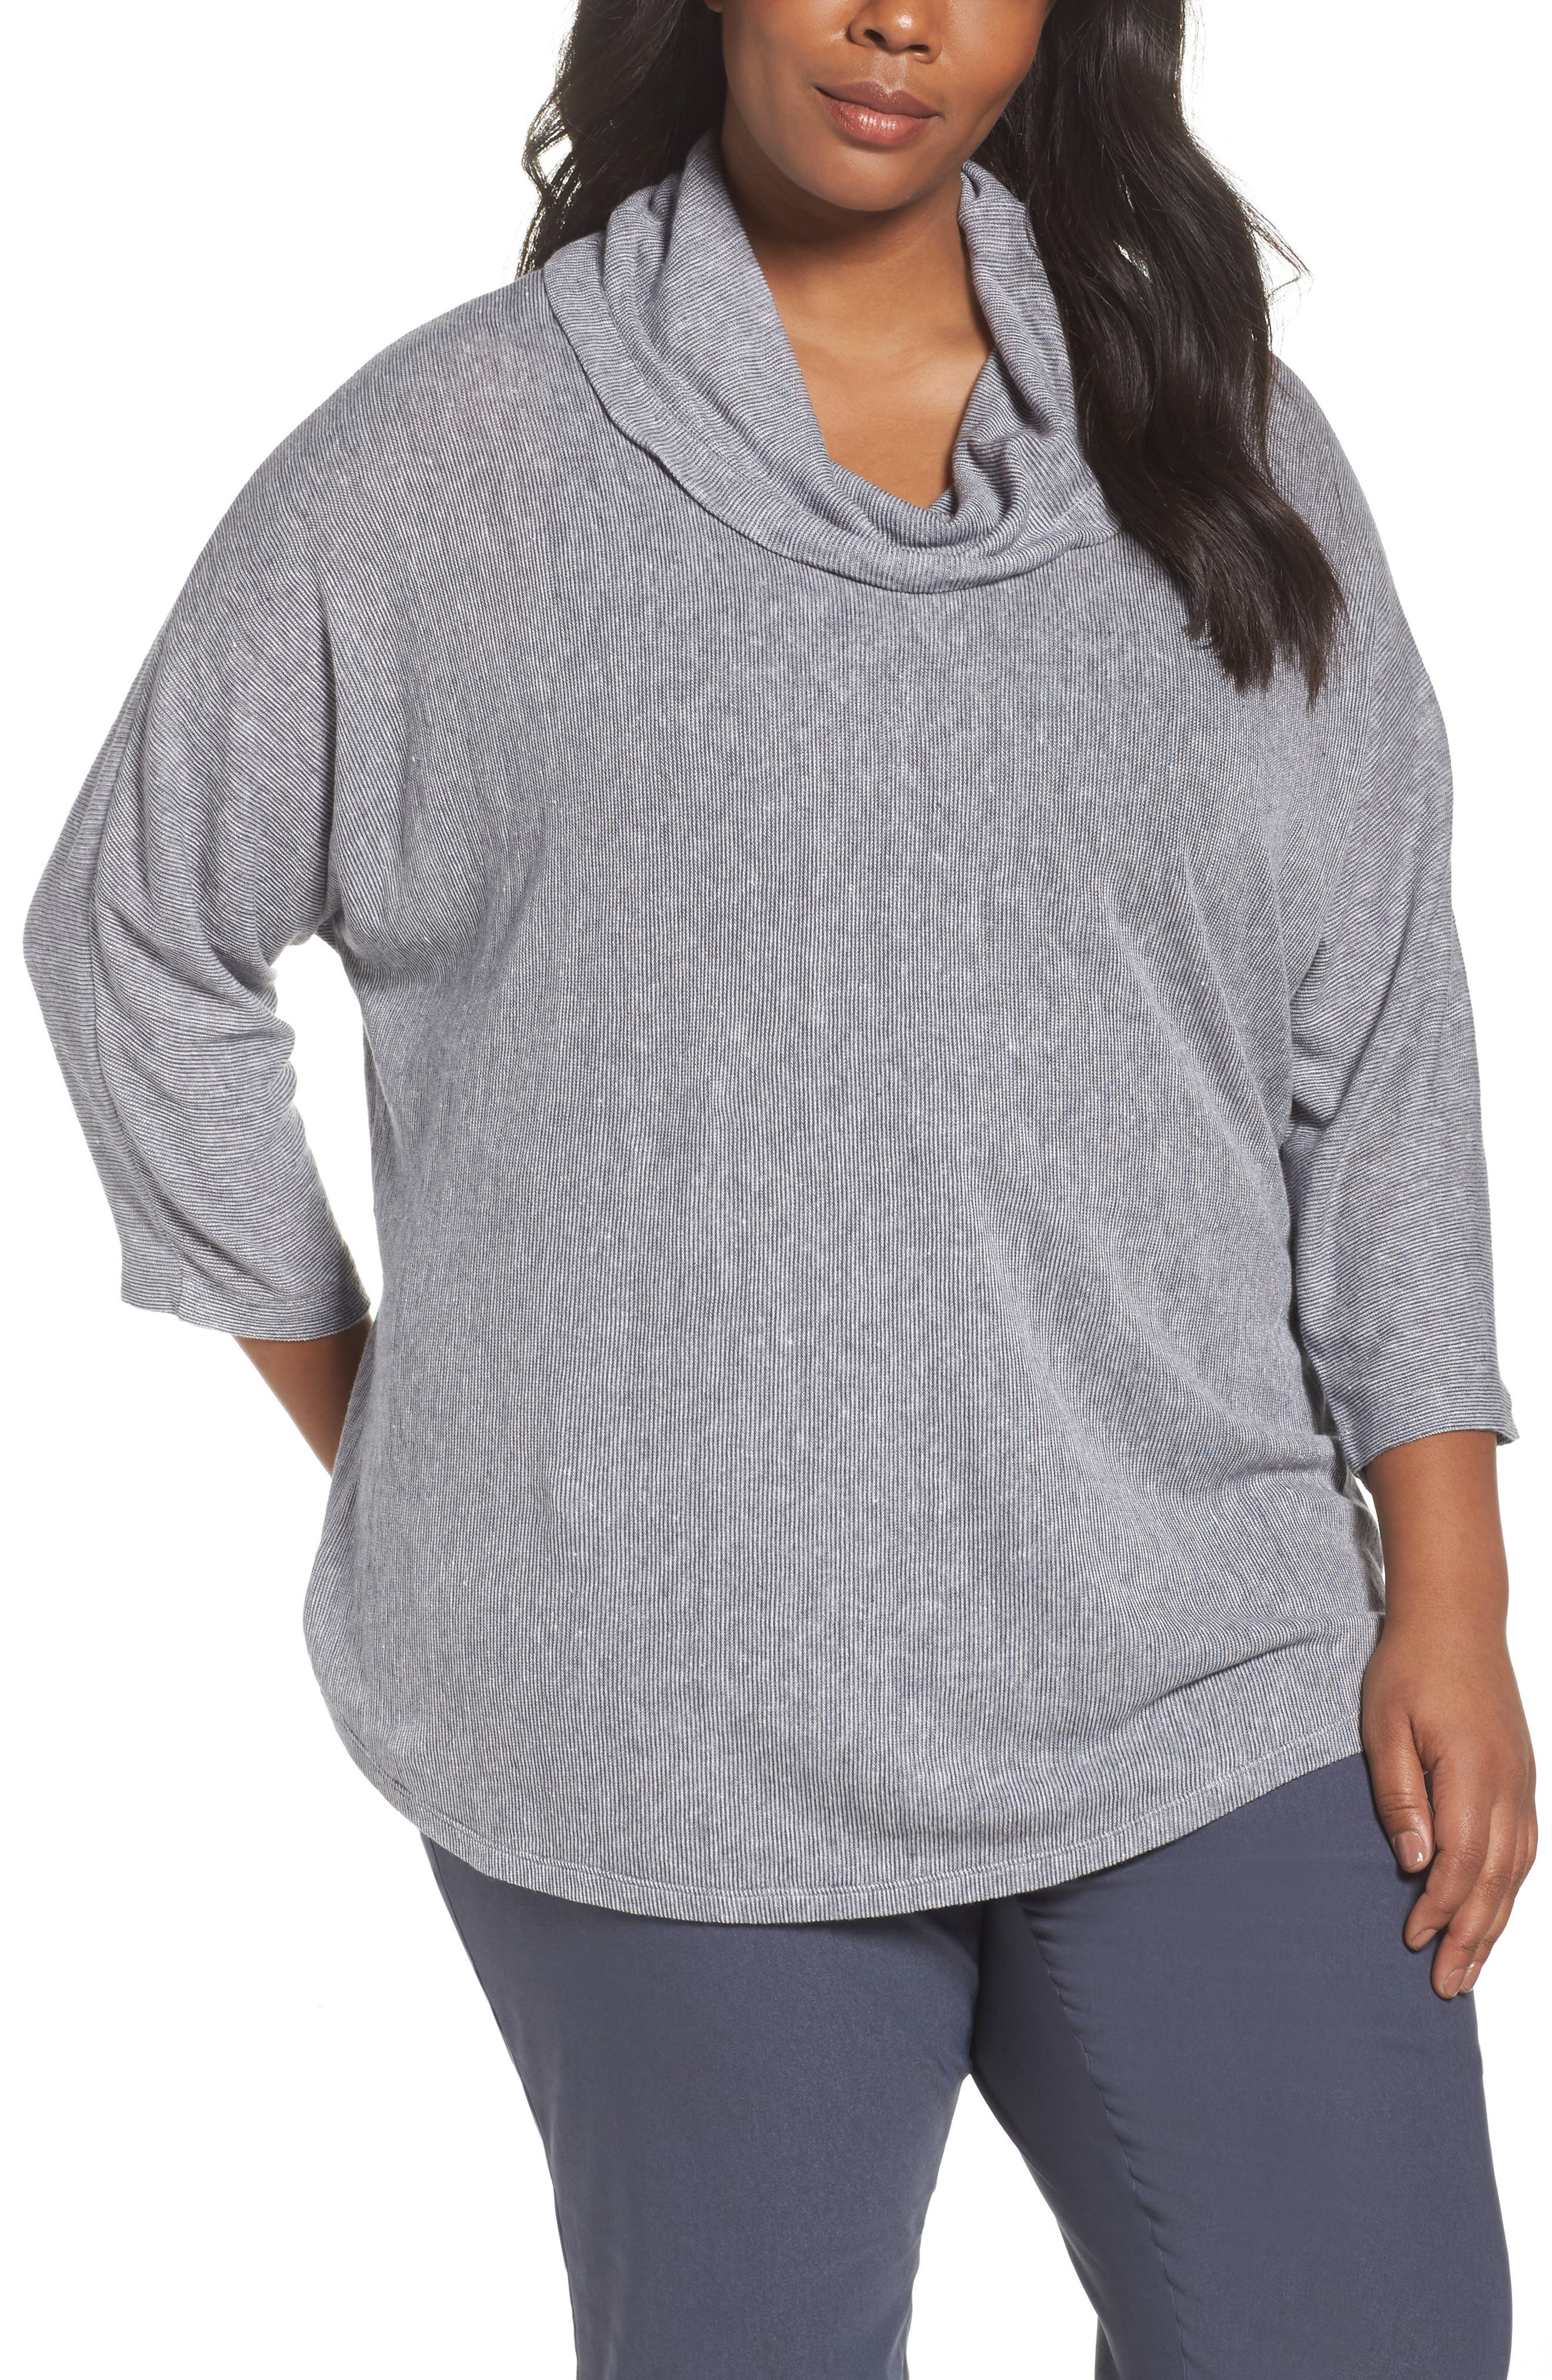 Blissful Cowl Neck Top,                         Main,                         color, Grey Multi